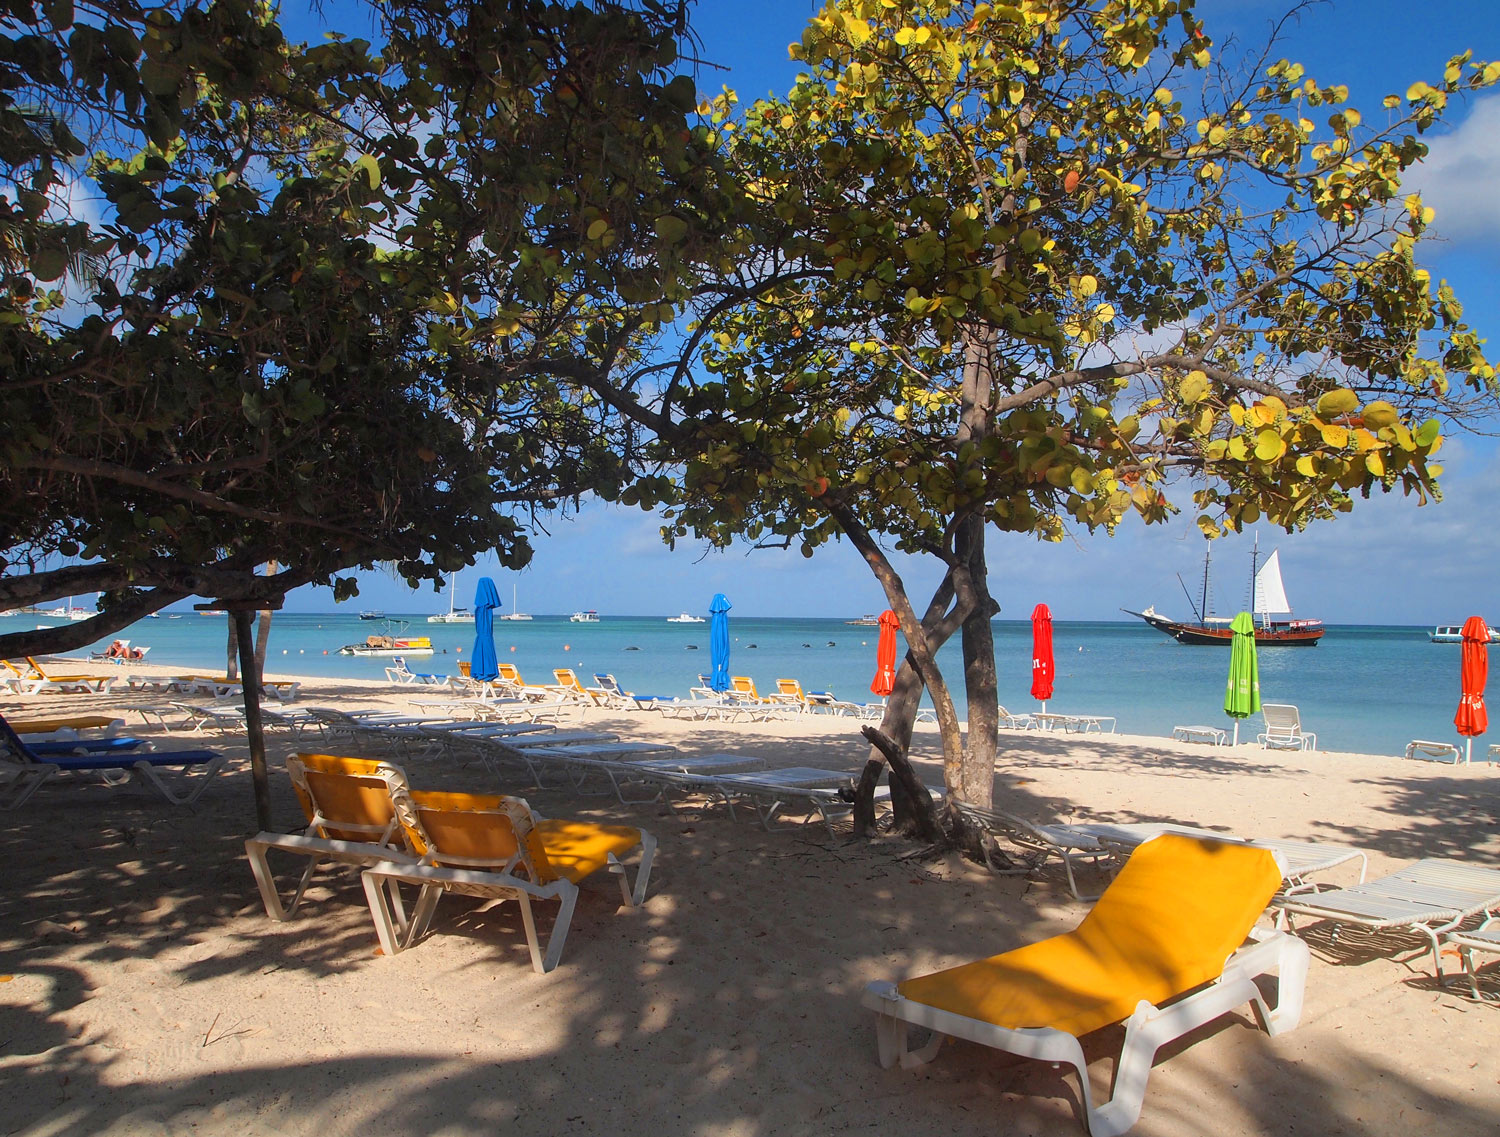 Aruba-Palm-Beach-trees-lounge-chairs.jpg